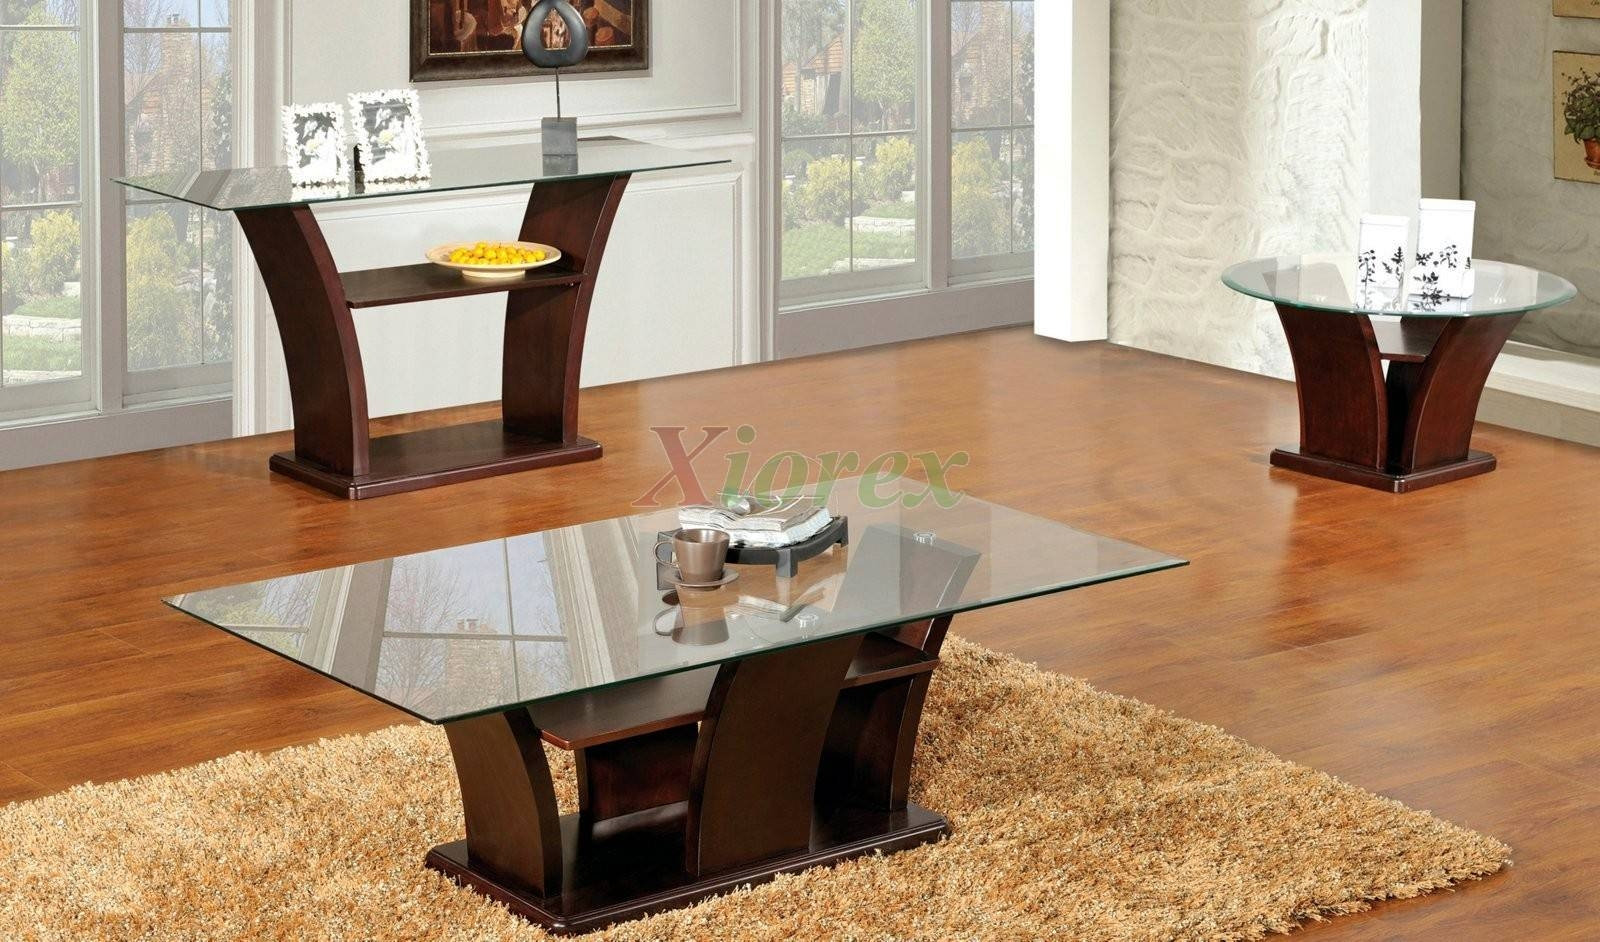 Coffee Table : 3 Coffee Table Set One Of Popular Living Room Within Coffee Table Rounded Corners (View 4 of 30)